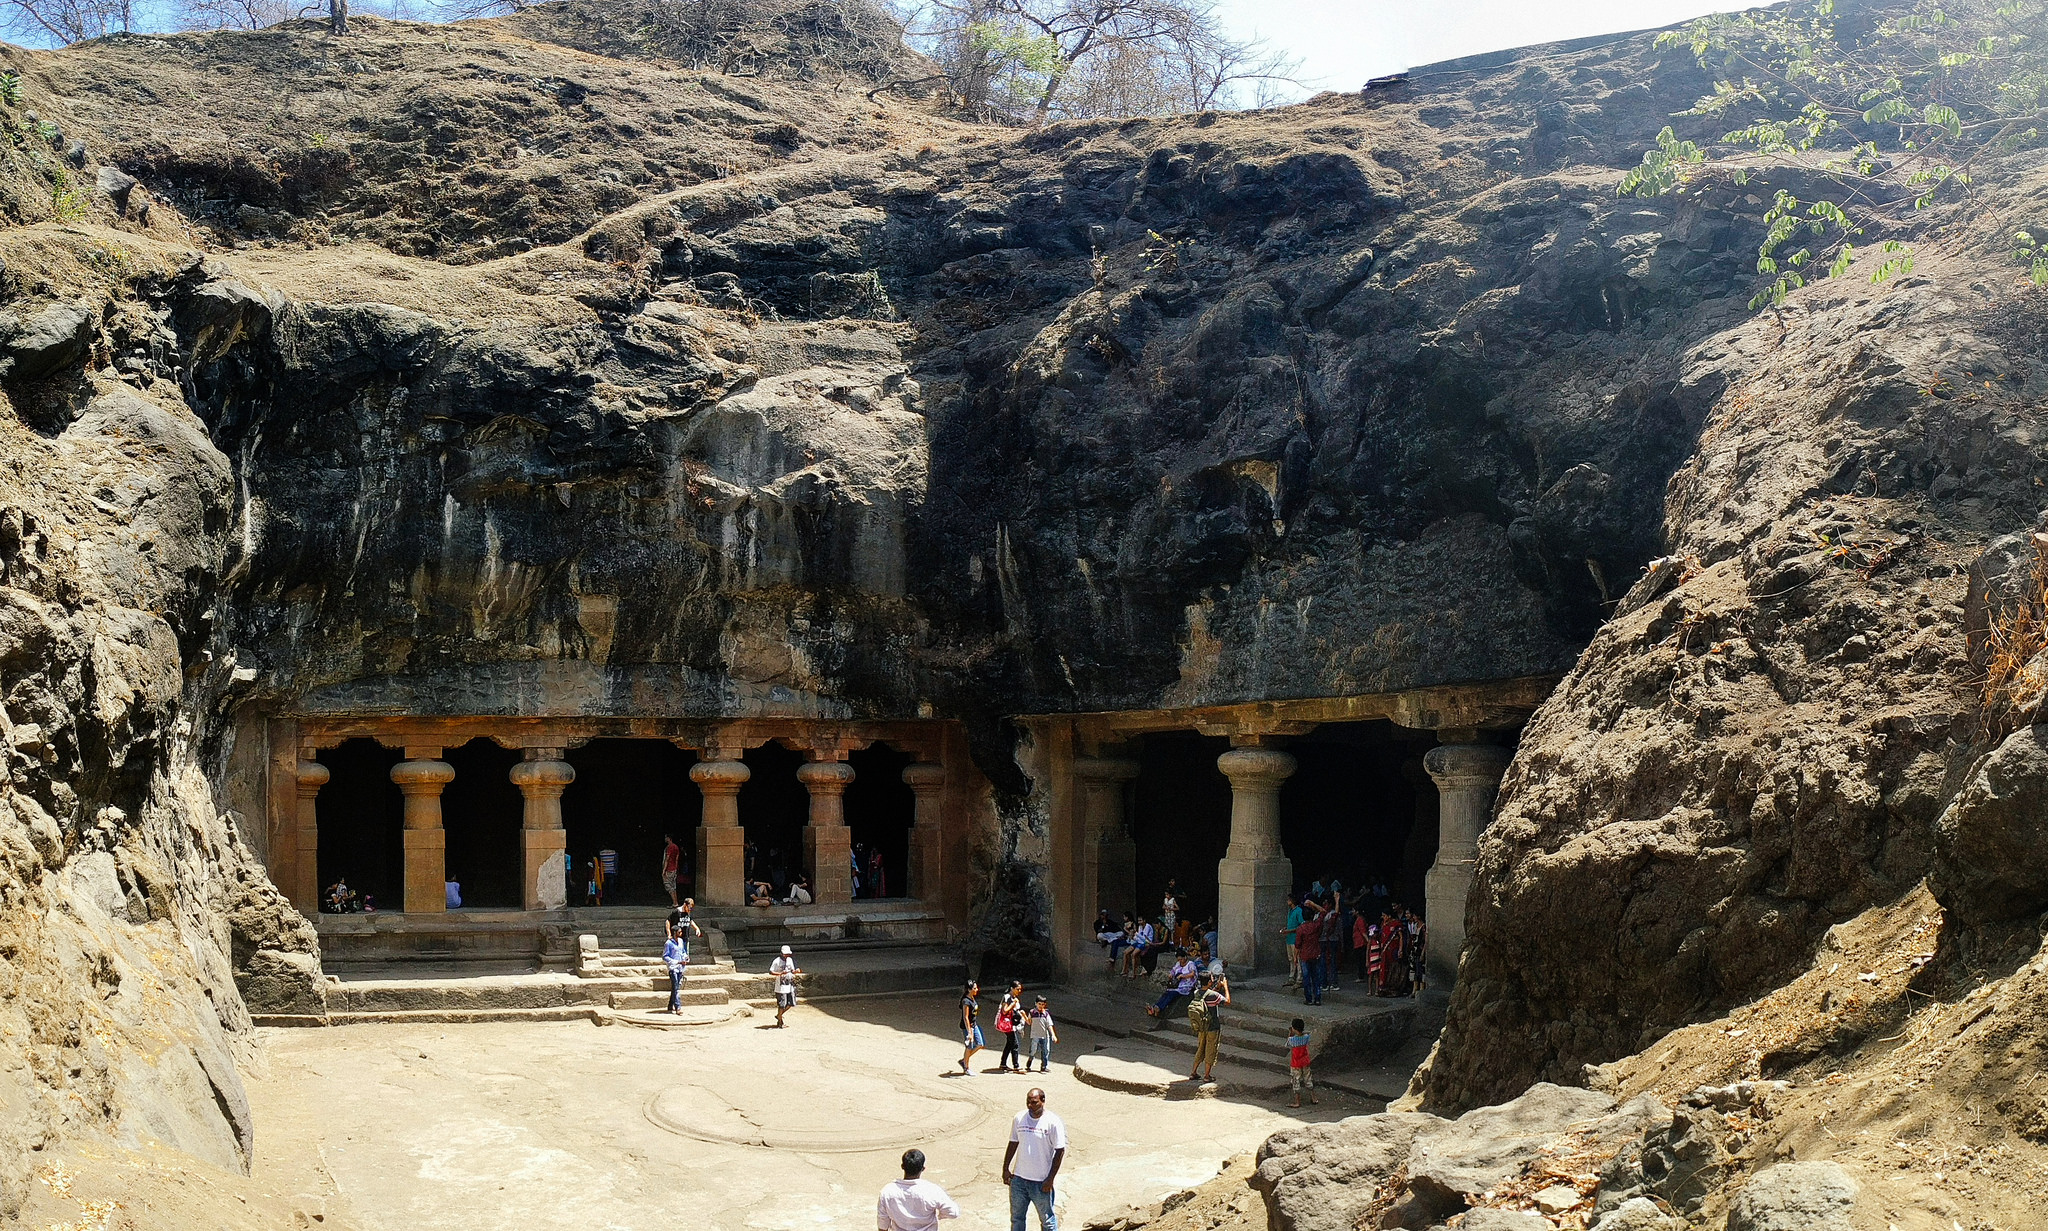 essays on elephanta the great cave of shiva The solidity of the rock obviated the need for periodic repairs, and many of the temples are in a state of good preservation to this day ad 350 to 700 compared with the brahmanical temples, they are austere and solemn cave no 10, the only chaitya at ellora, is in the form of a chapel, reminiscent of ajanta and elephant.